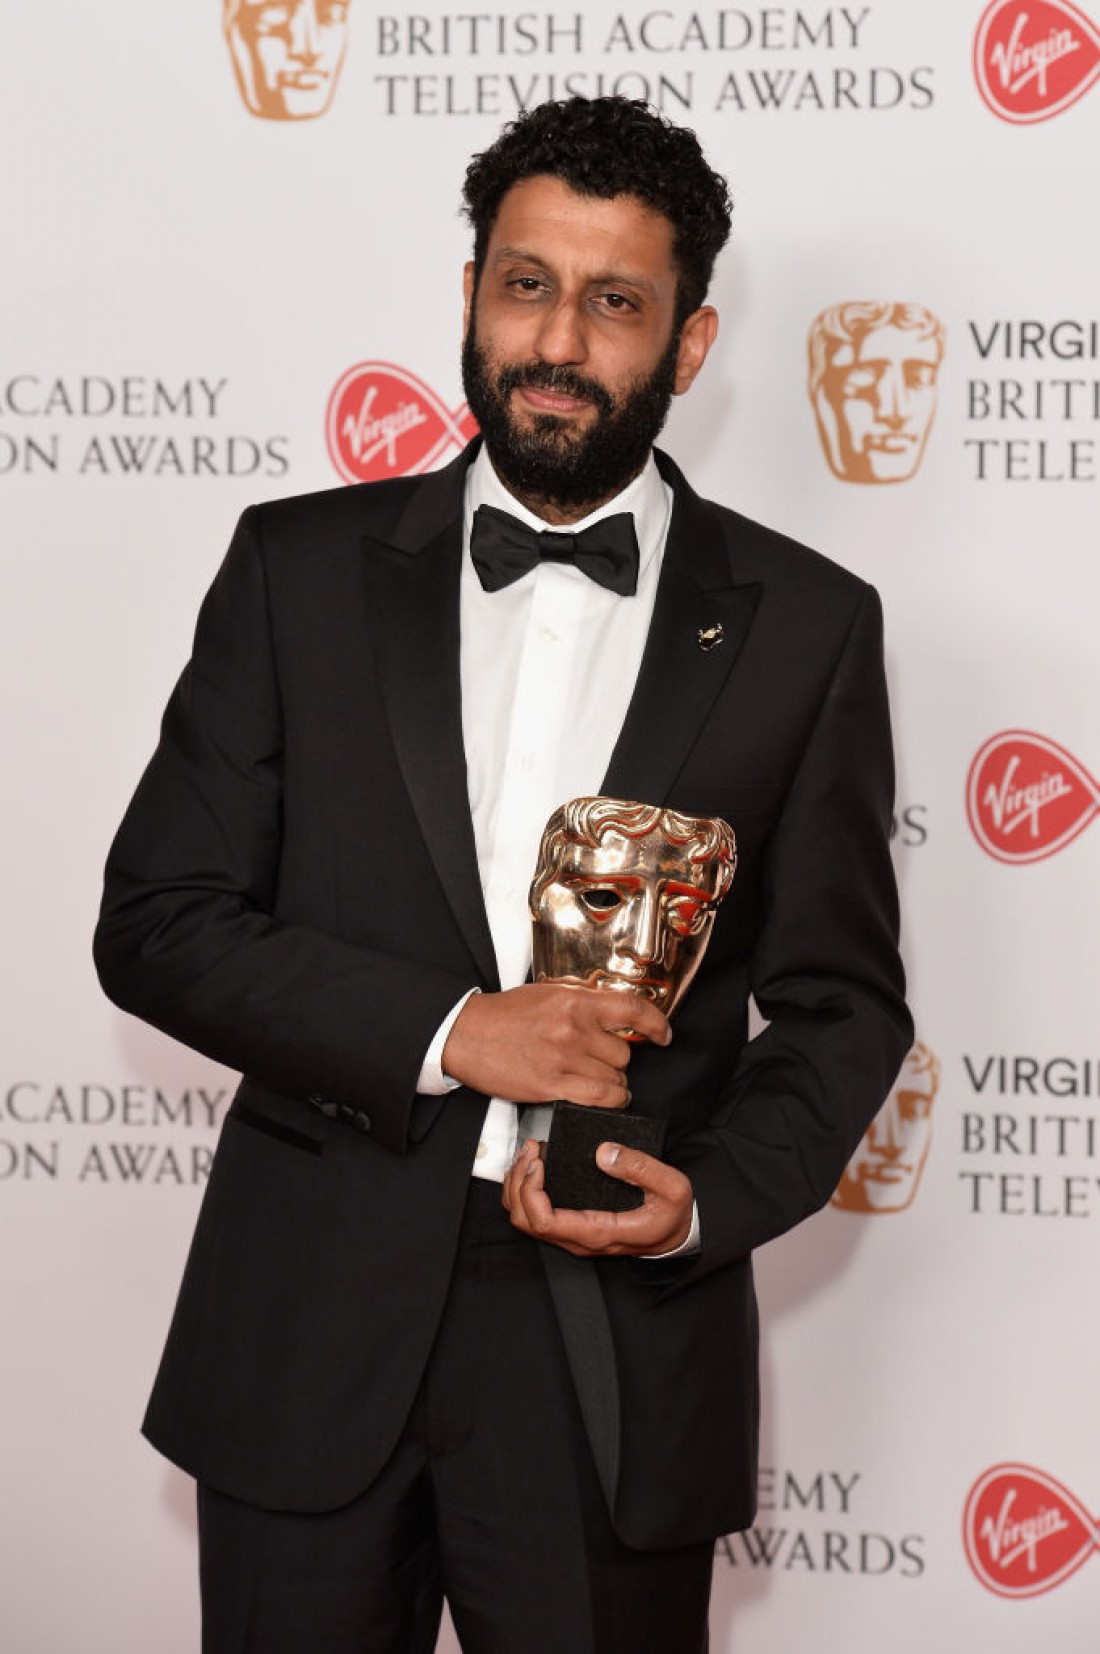 BAFTA TV: Адиль Акхтар